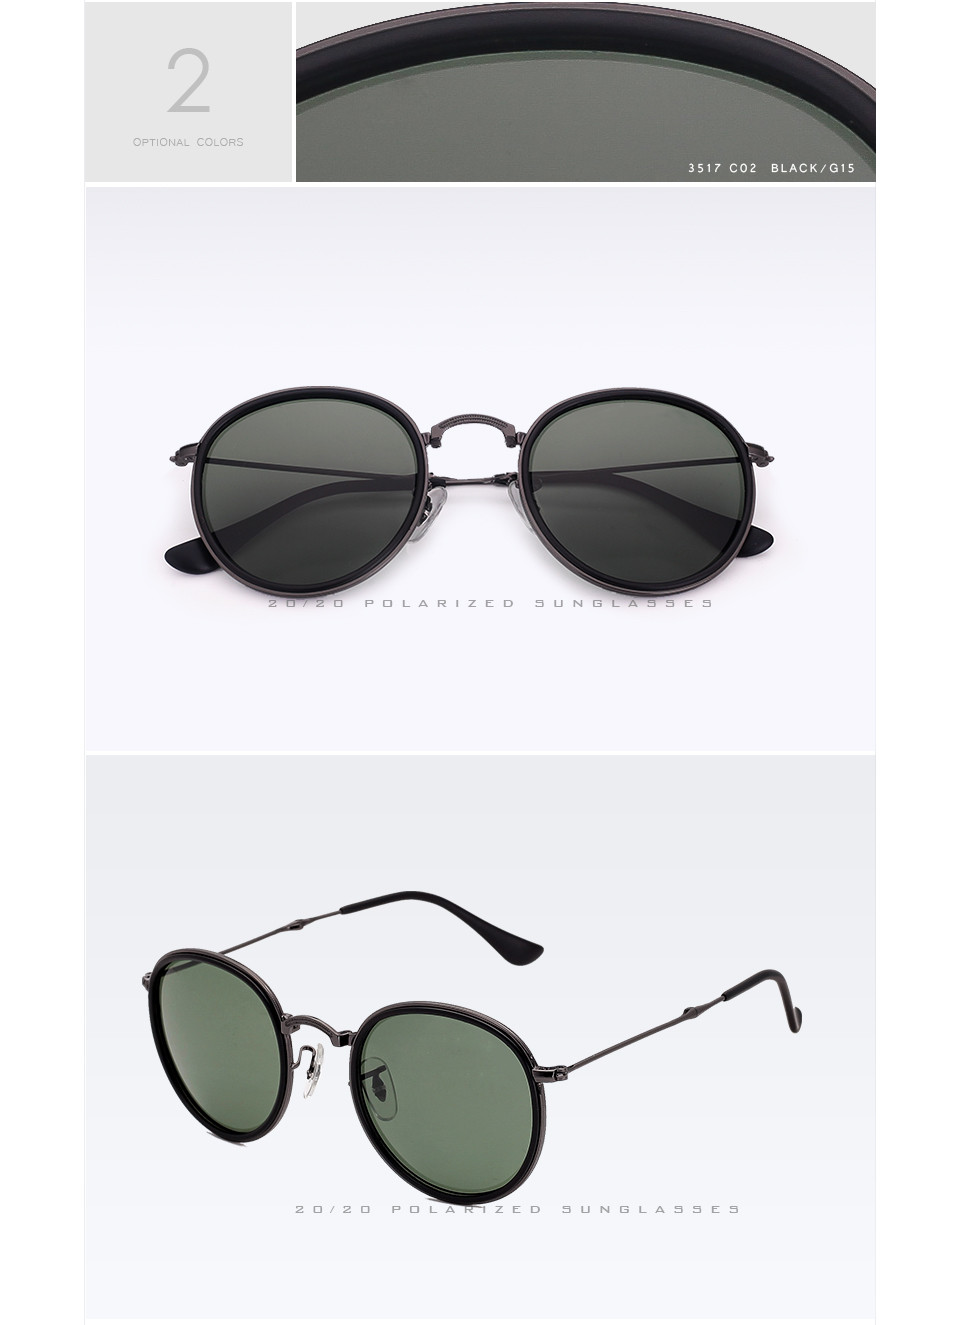 07d32148ce Hot Sale Cheap China Wholesale Sunglasses New Fashion Folding Sunglasses  2015 - Buy Folding .